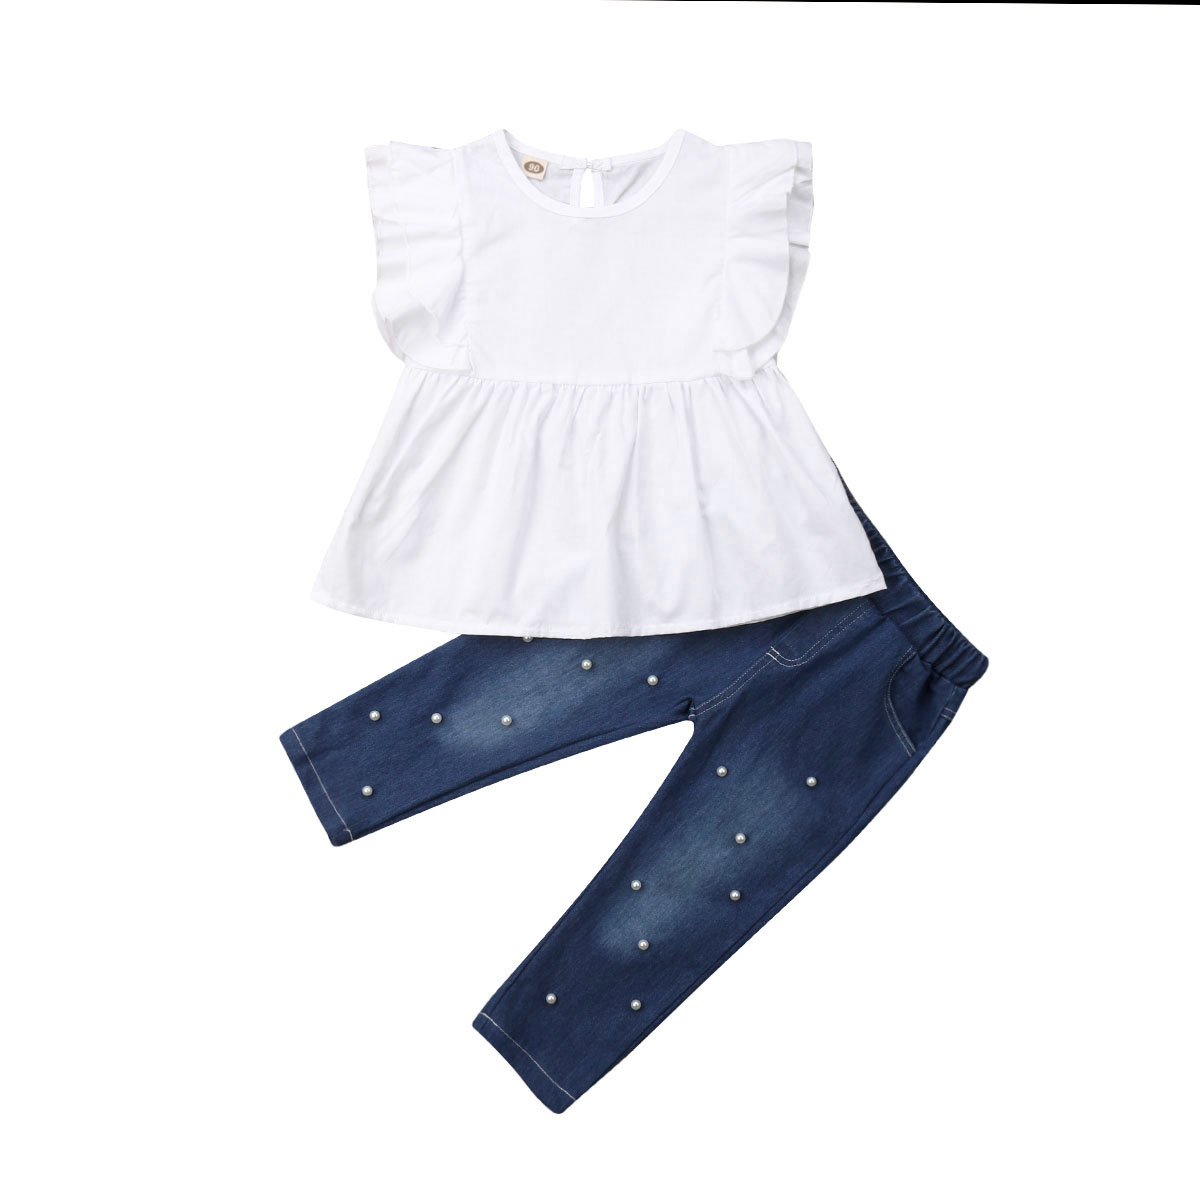 2Pcs Toddler Kids Baby Girls Cotton Top Sleeveless Chiffon shirt Blouse Denim Pants Outfits Clothes Set 2019 in Clothing Sets from Mother Kids